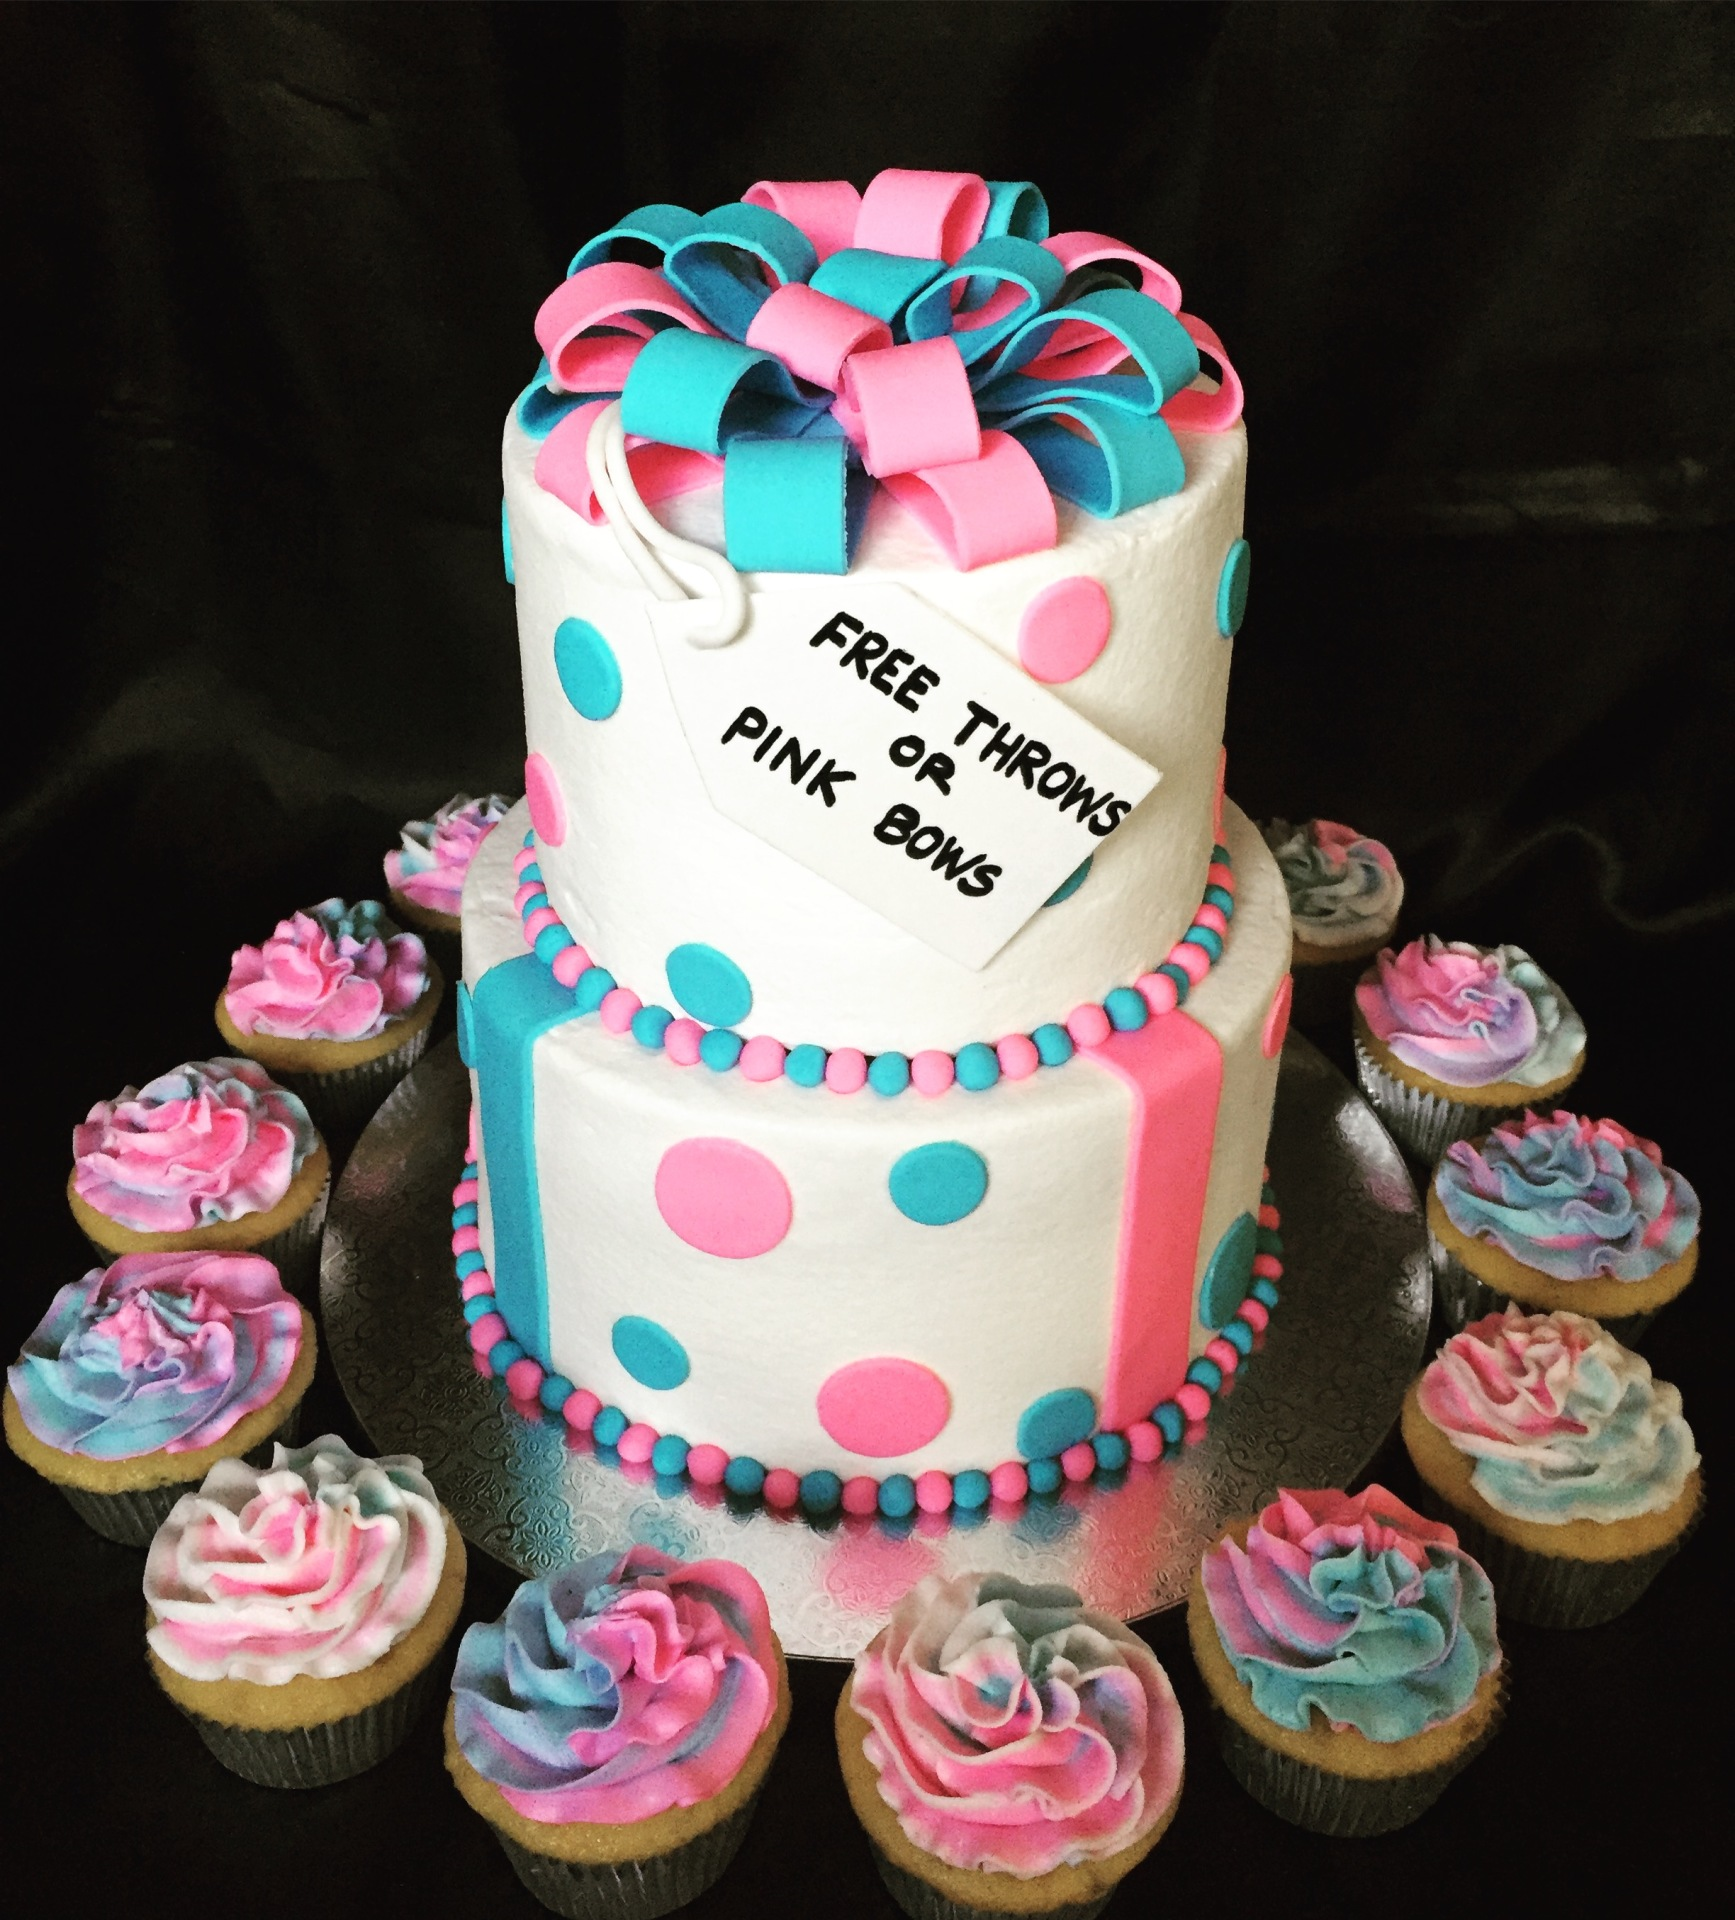 Pink and Blue gender reveal cake/cupcakes